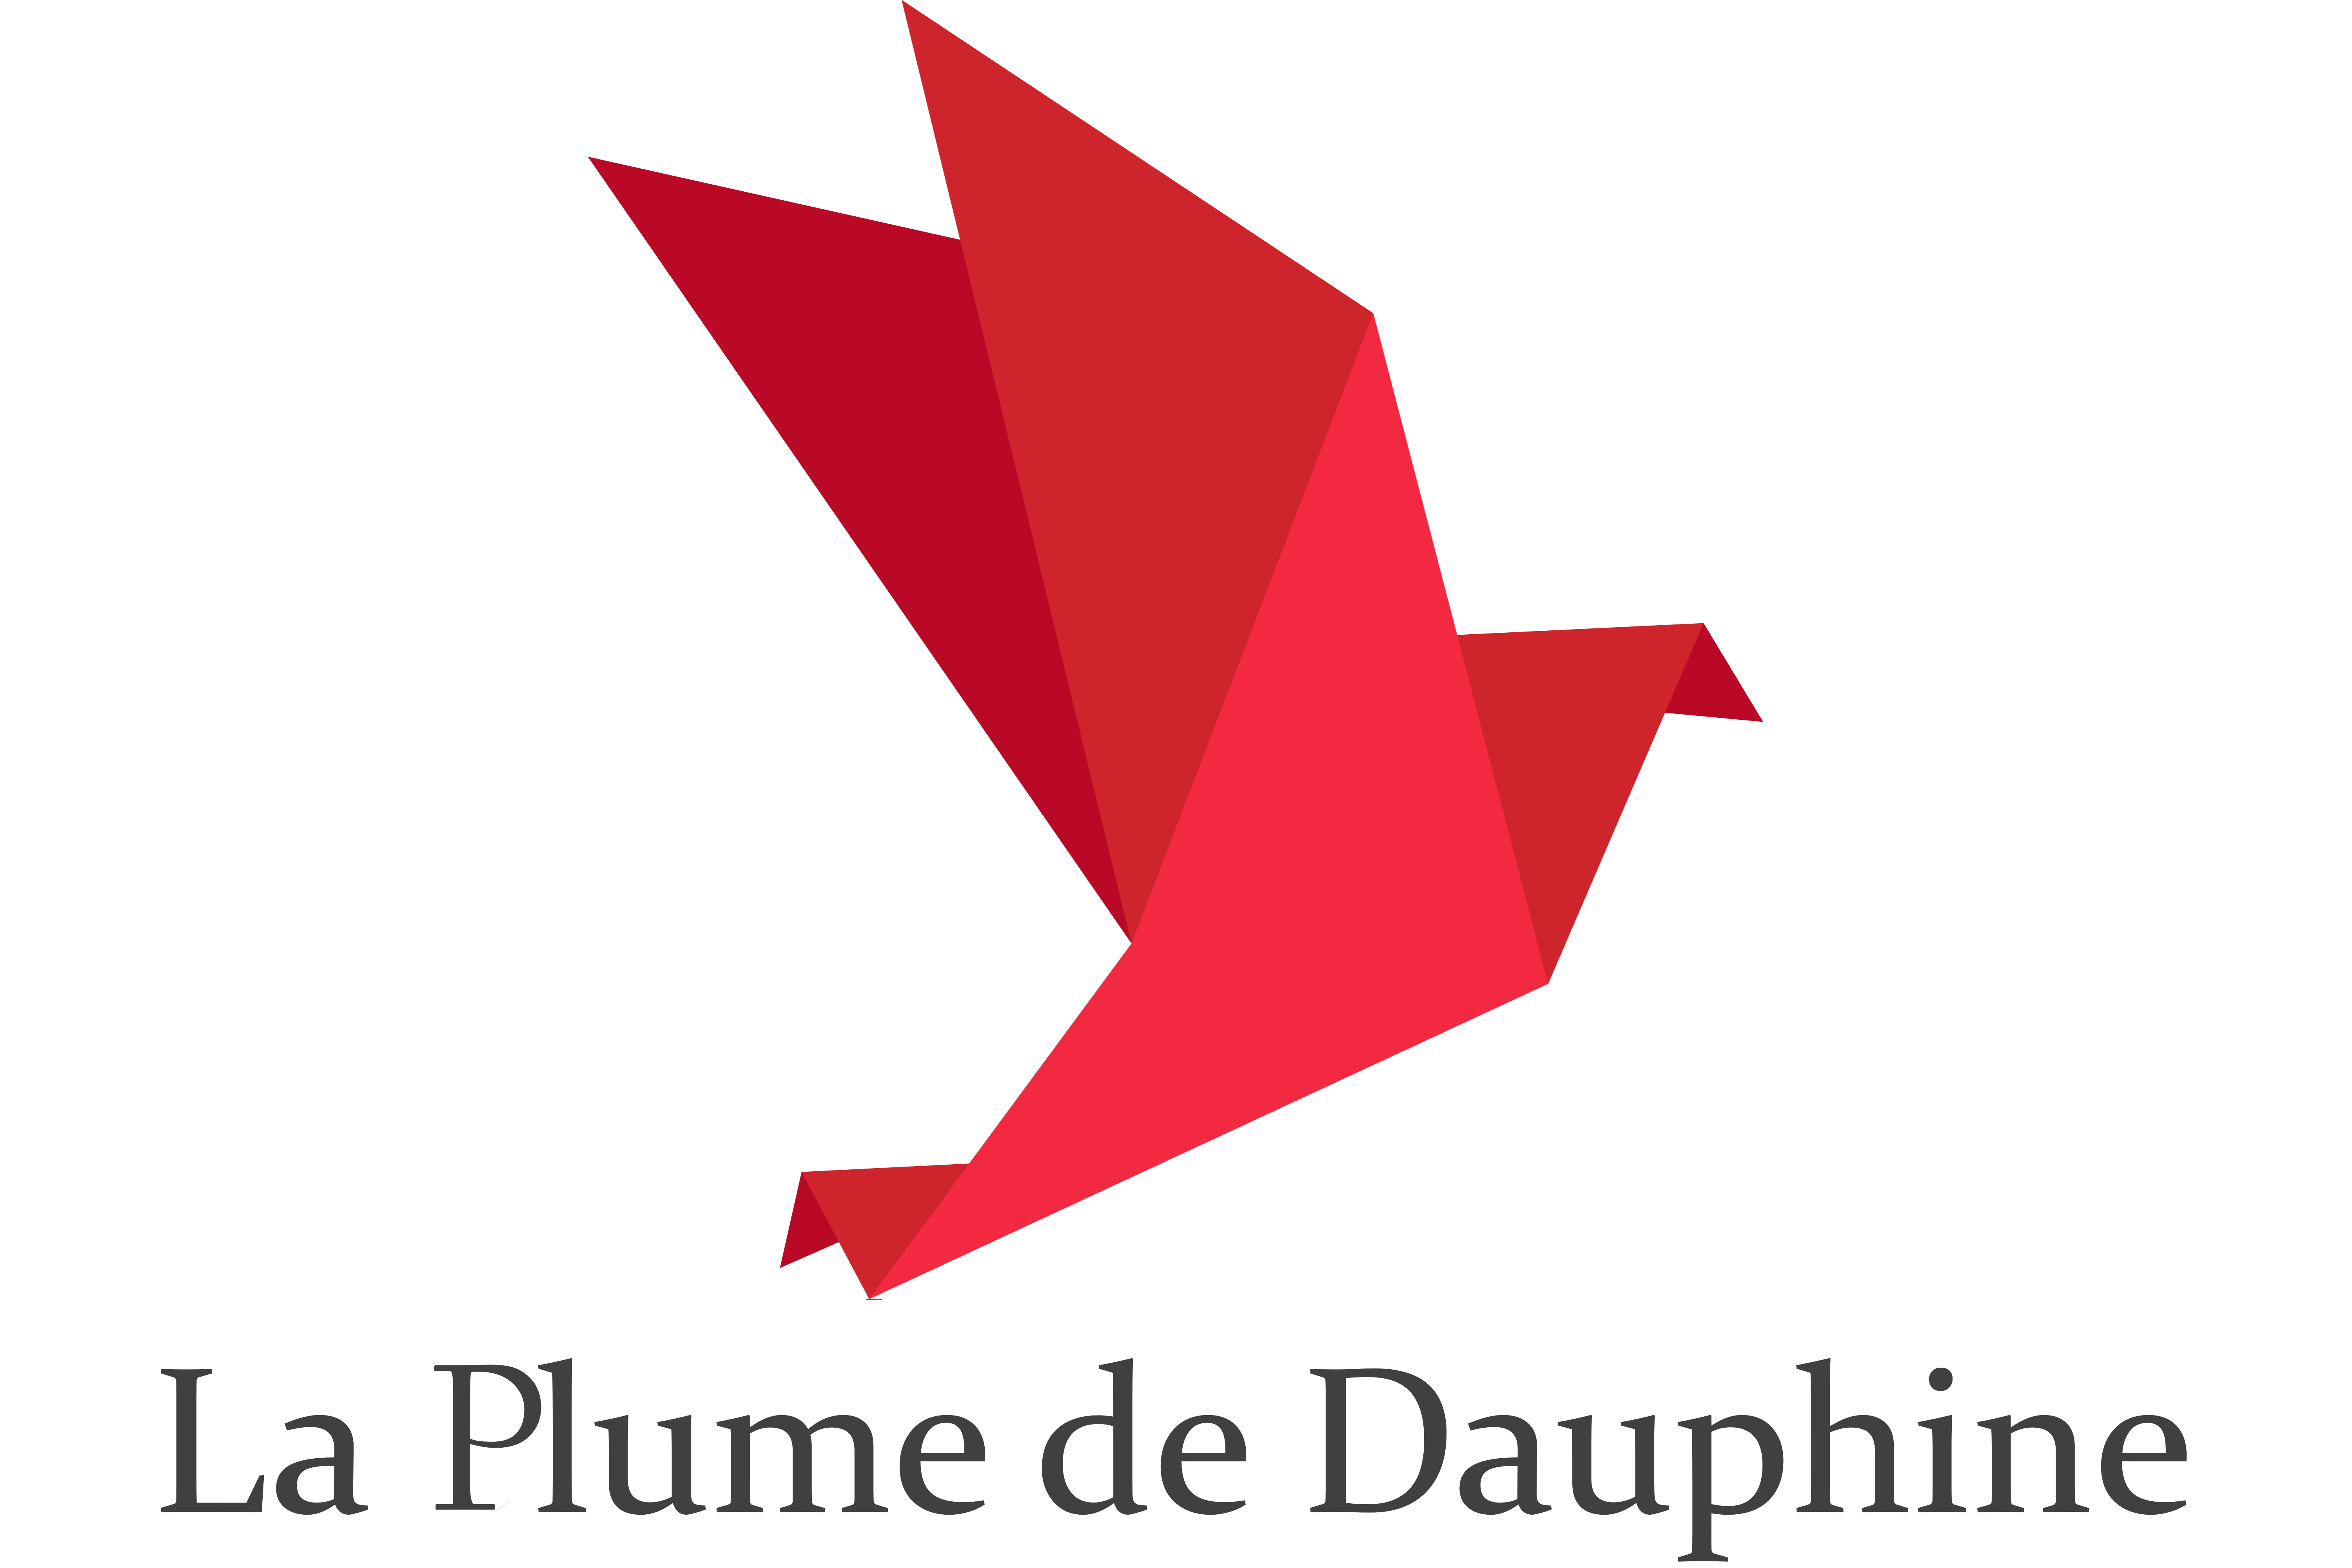 La Plume de Dauphine